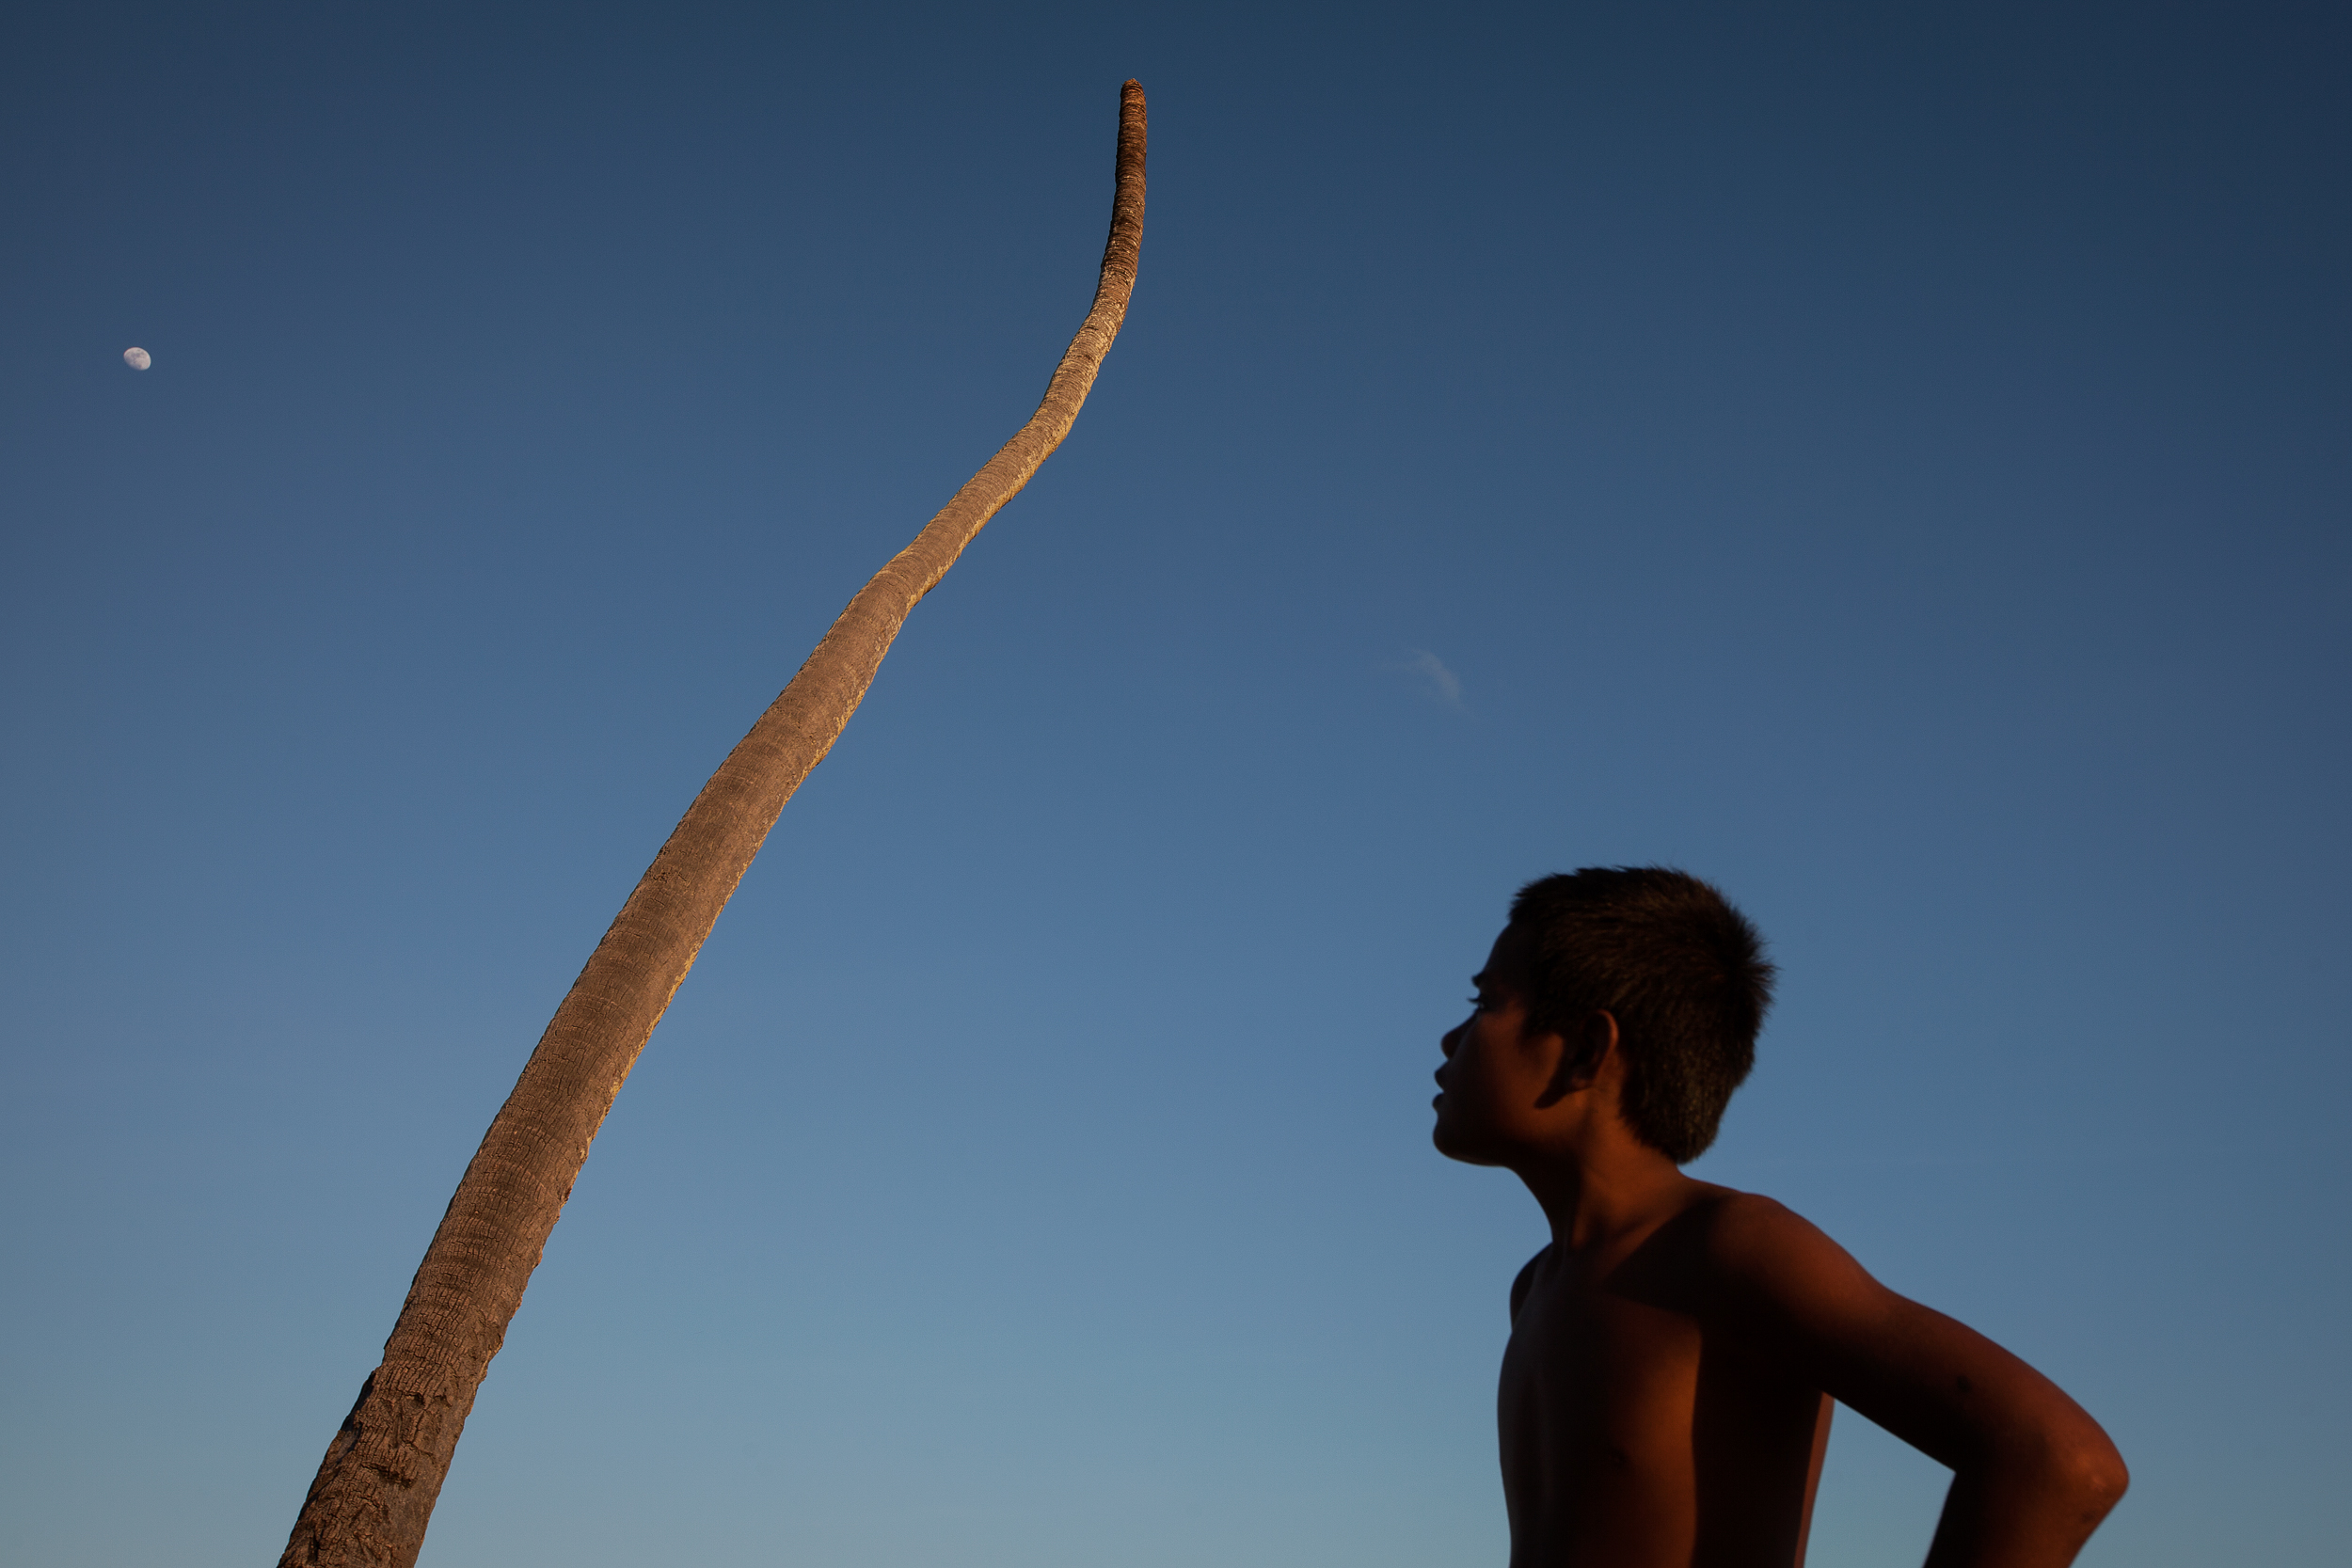 At sunset in South Tarawa, a boy looks across at a palm tree killed by the sea. In a few days, the moon will be full, bringing the highest tide in three months and the chance of another inundation by the sea.